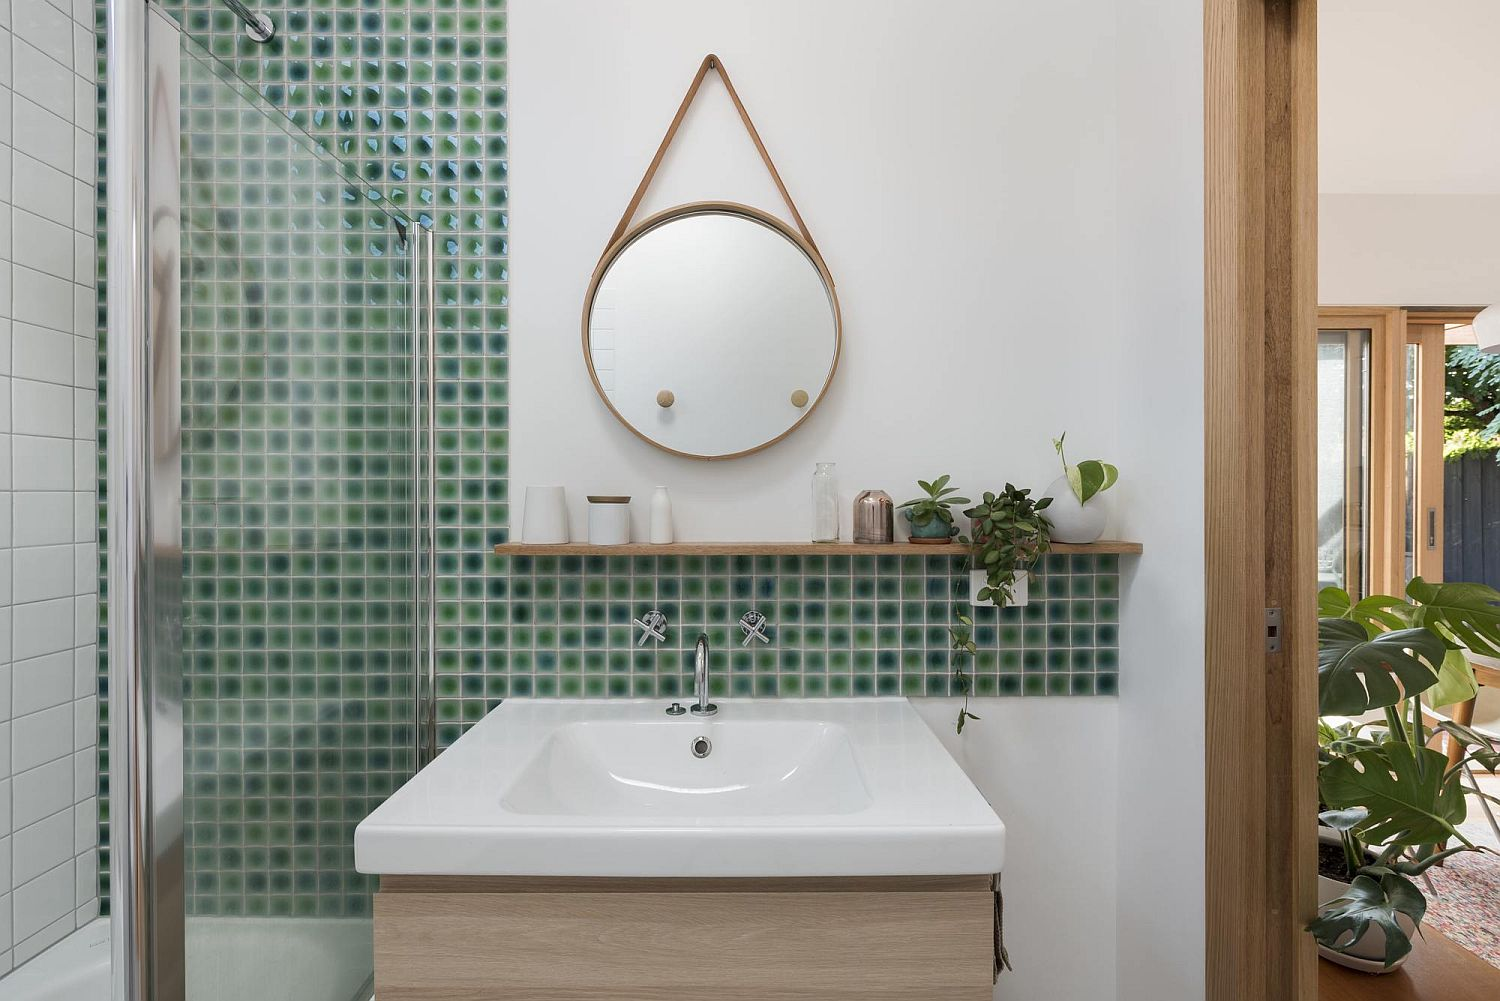 Small green tiles in the bathroom along with a small vanity and stylish mirror